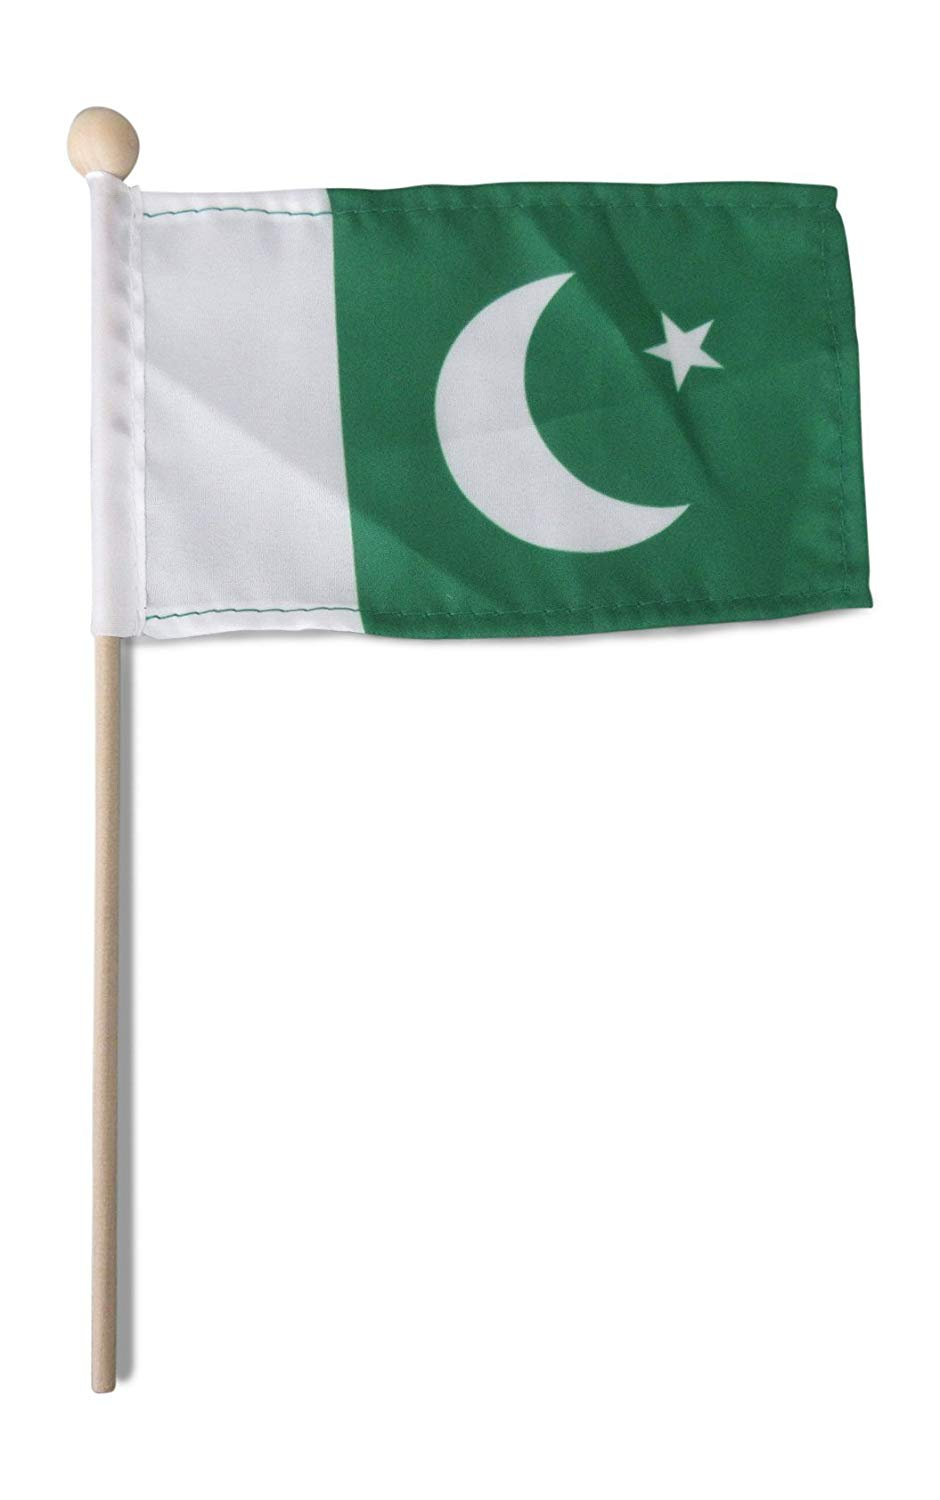 17a2a7a721 Get Quotations · Tinisa's World 10 Premium 4x6 Inch Pakistan Mini Flag  Pakistani Hand Held Stick Flags Safety Ball